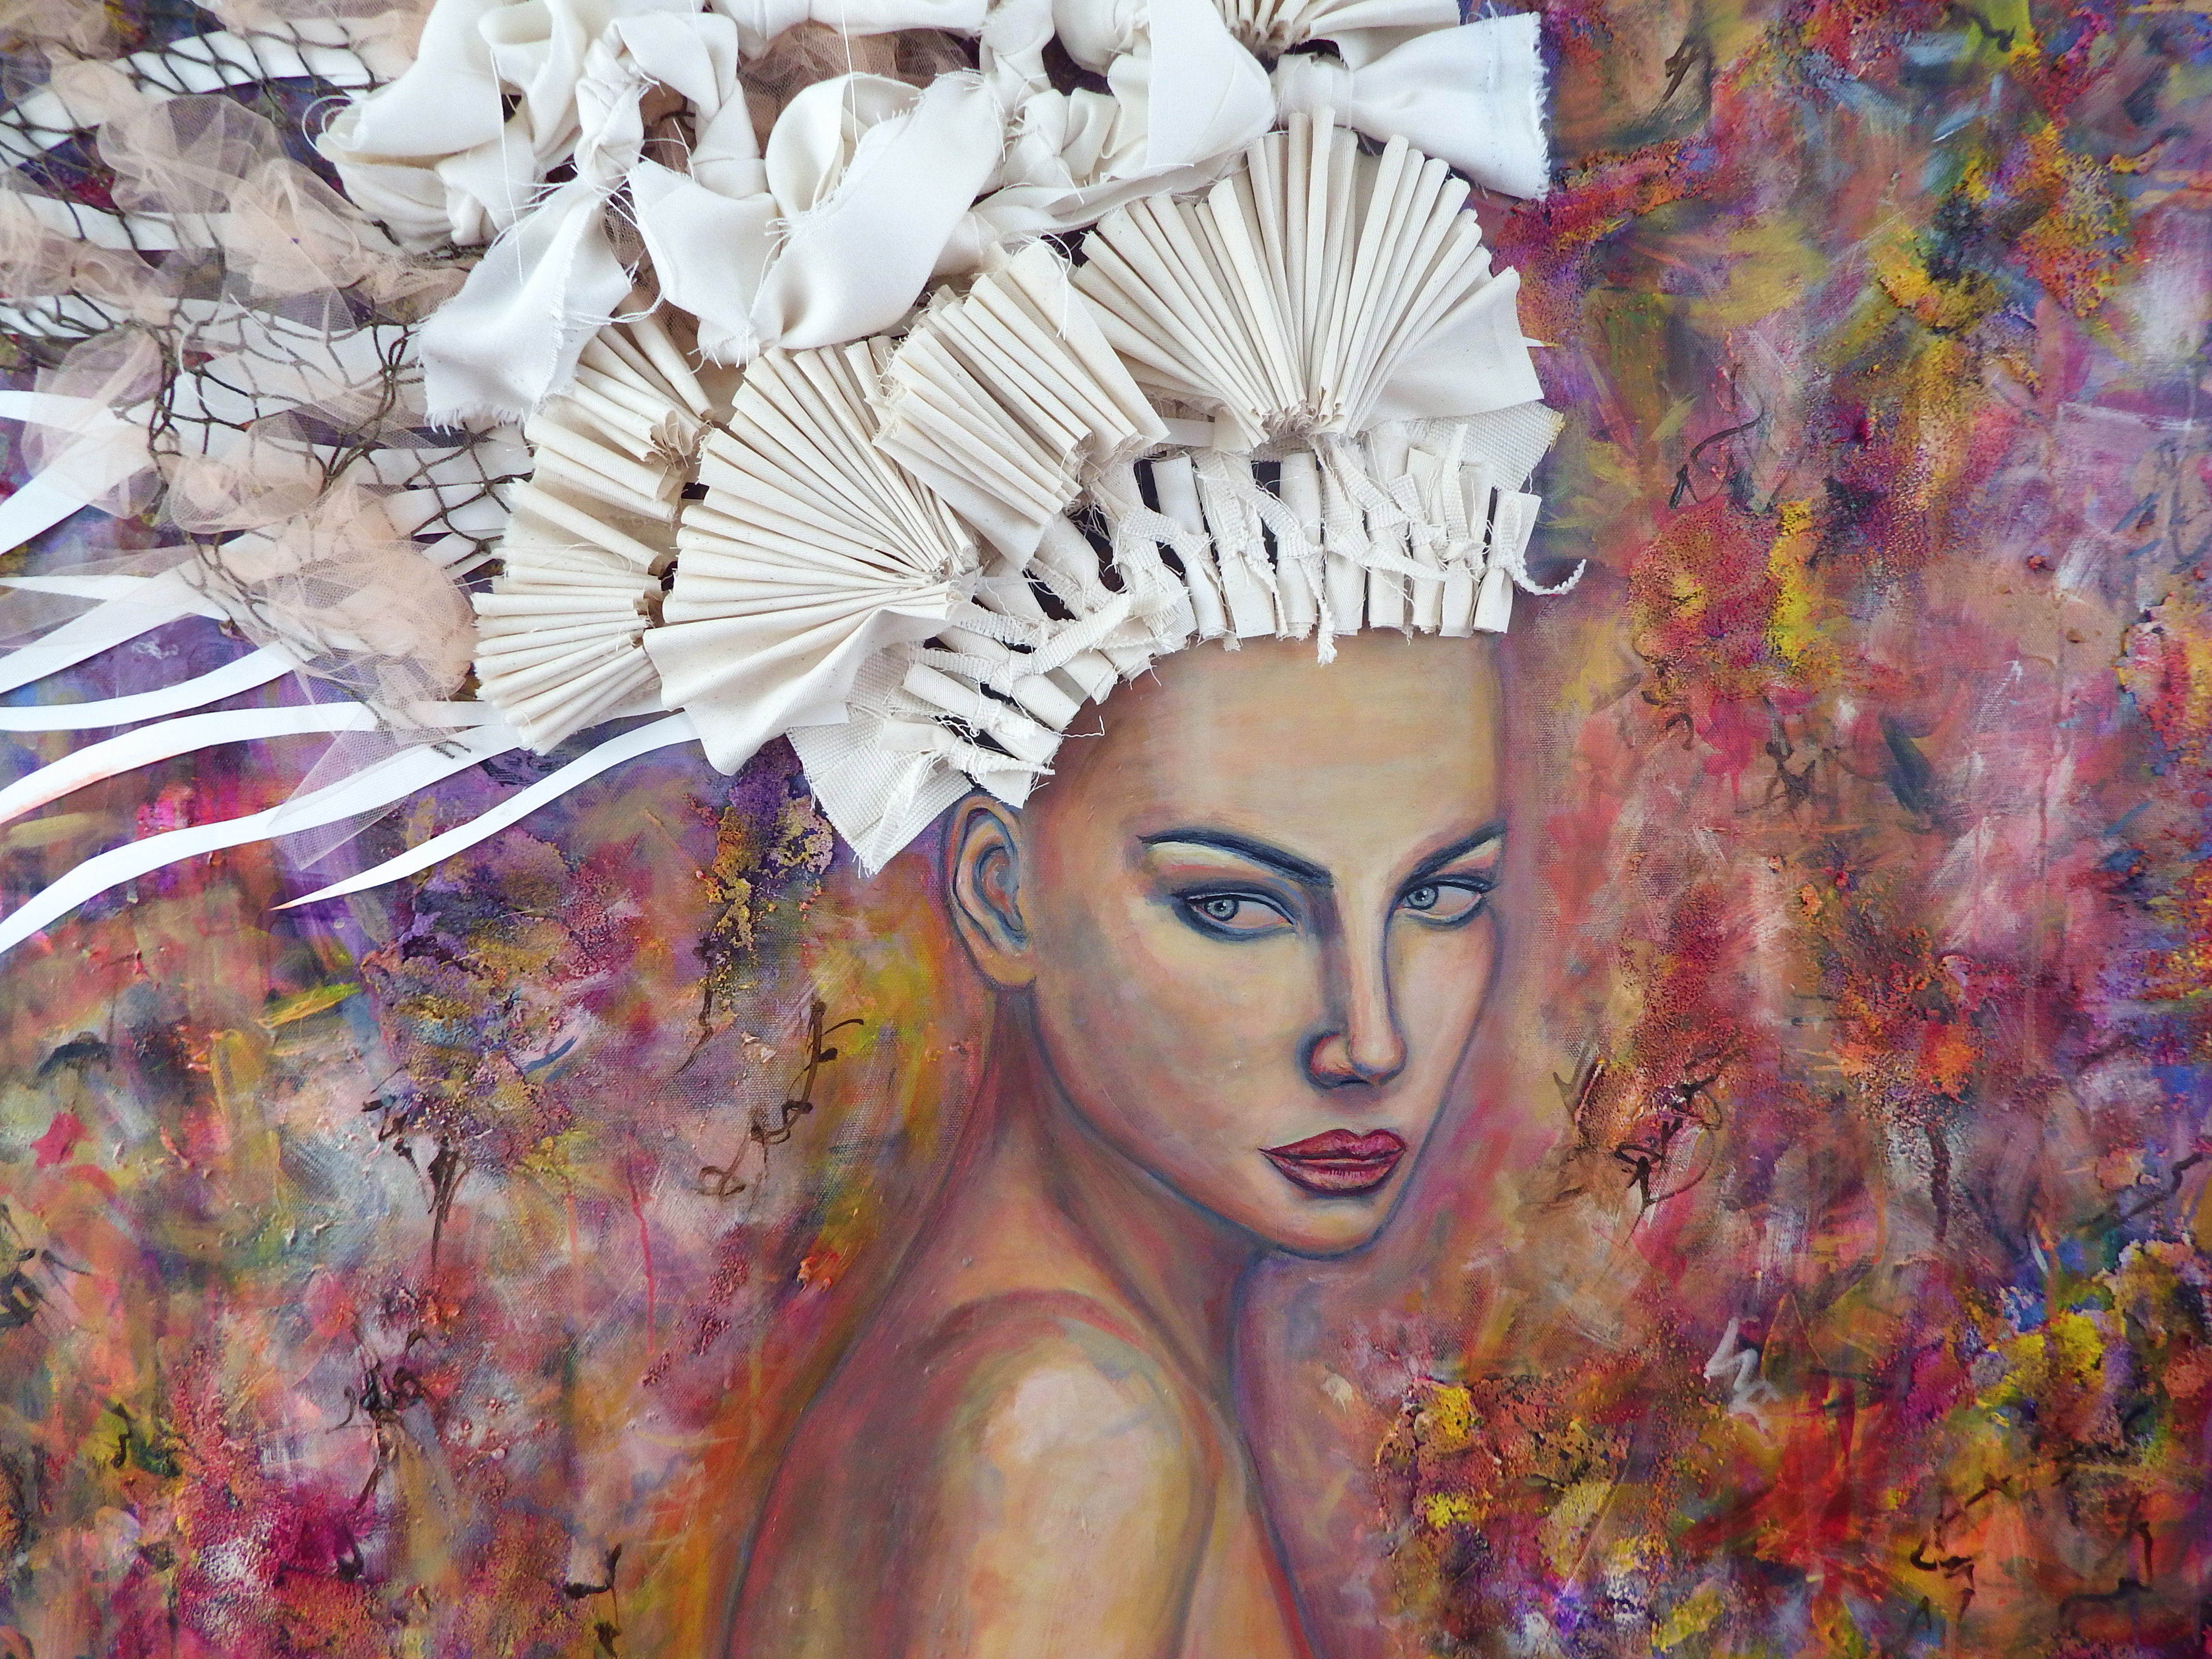 Between the Lilies, Mixed Media on Canvas, by Sabrina Brett 2